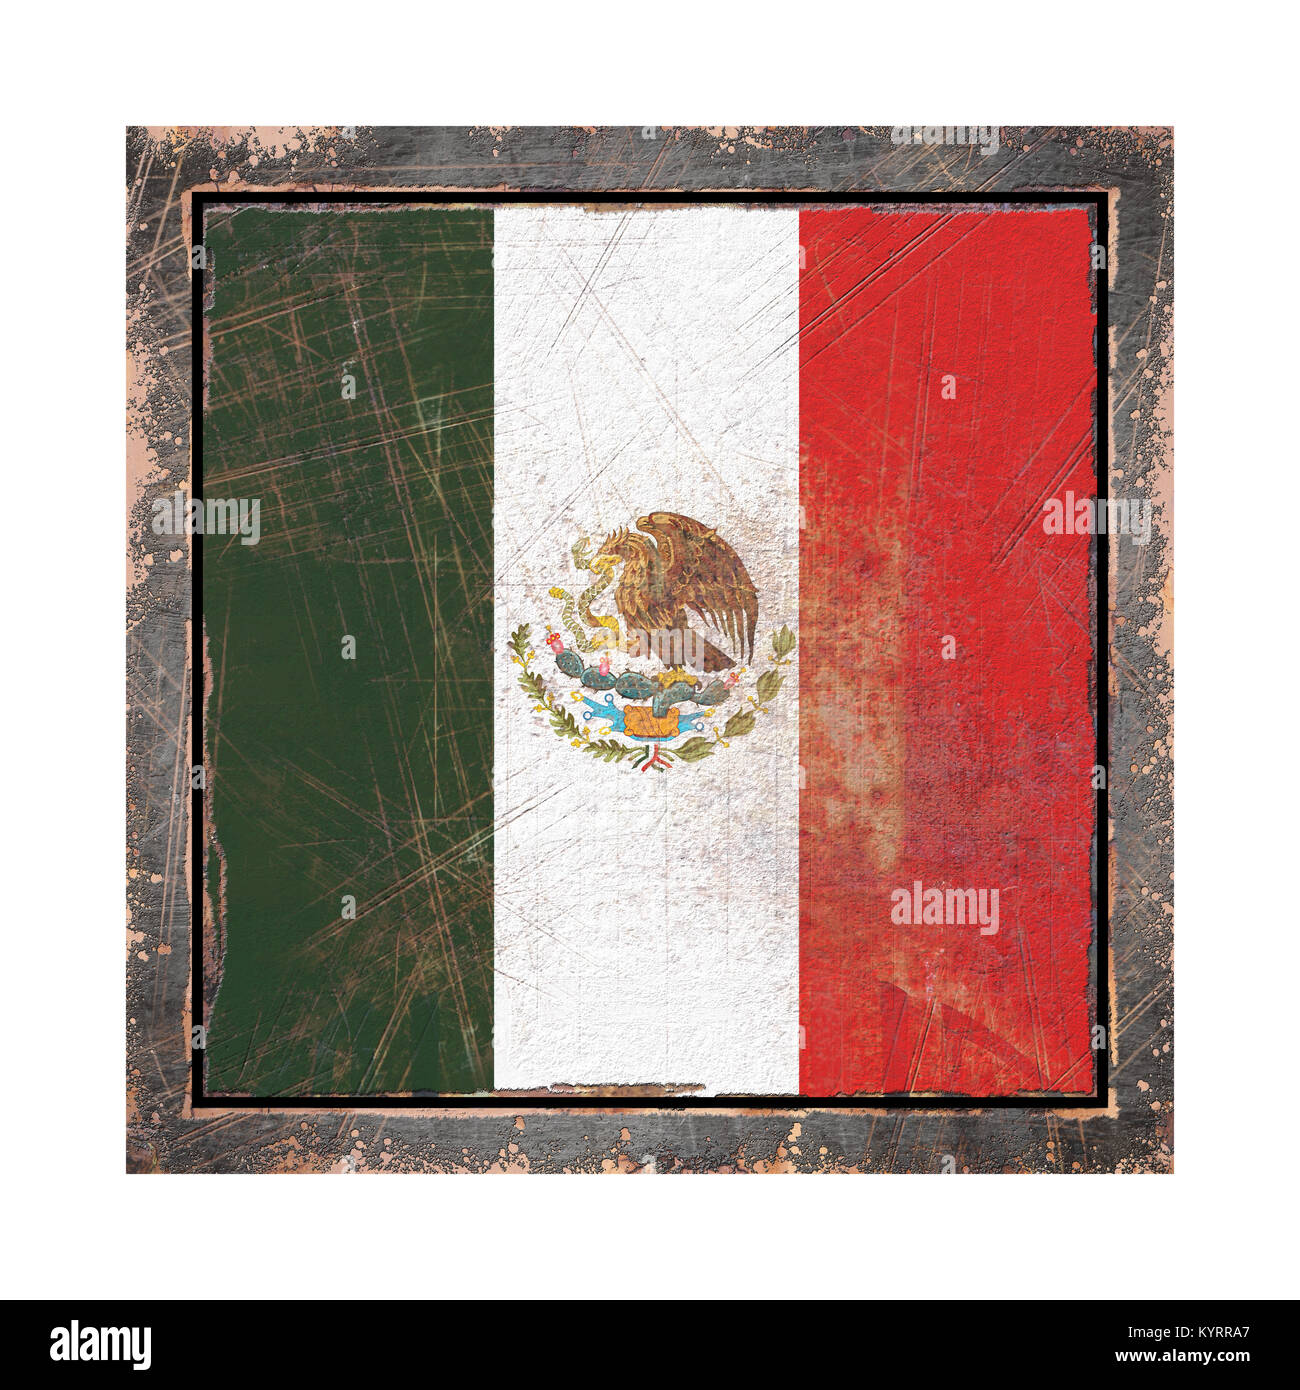 3d rendering of a Mexico  flag over a rusty metallic plate in an old frame. Isolated on white background. - Stock Image